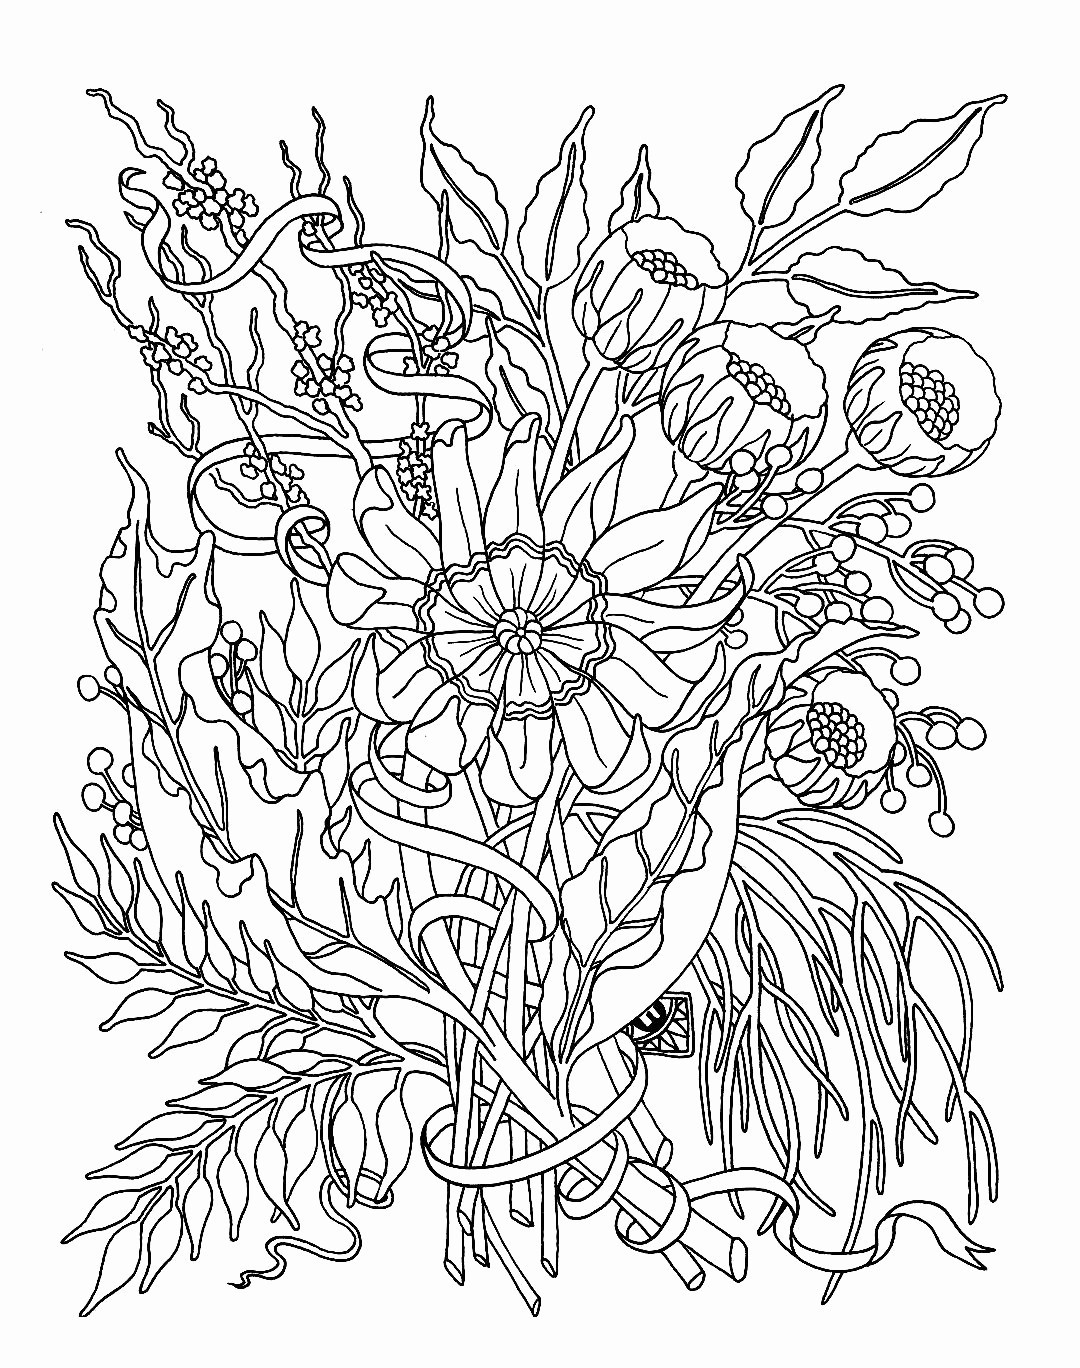 zebra print vase of plant coloring pages vases flowers in vase coloring pages a flower throughout plant coloring pages plex coloring pages